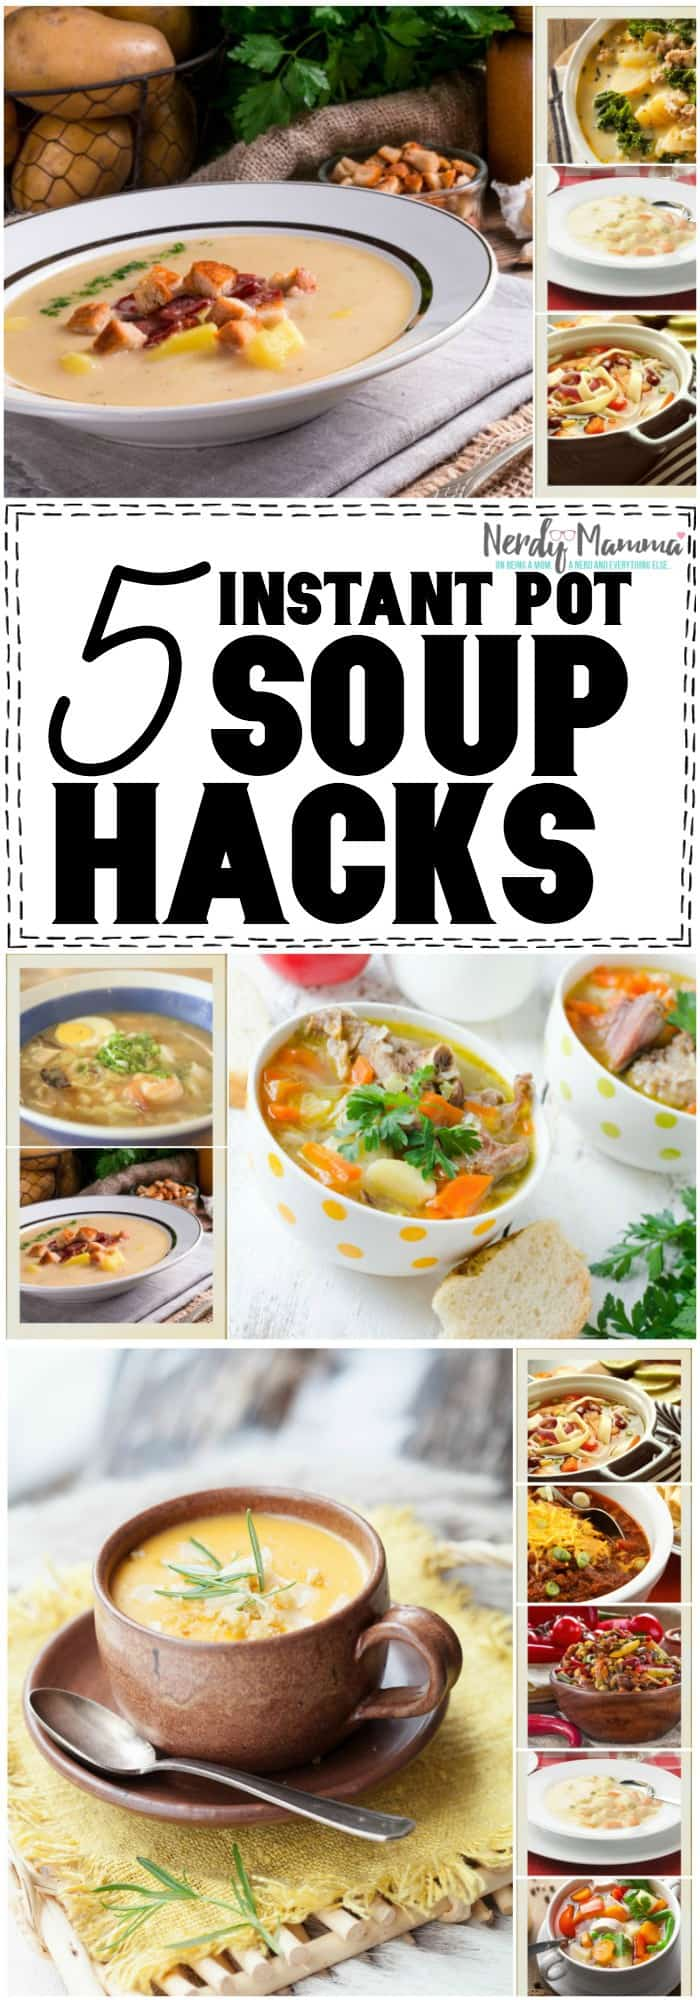 I love these simple Instant Pot Soup Hacks! Ridiculously easy to understand and DO! #hacks #instantpot #pressurecooker #soup #howto